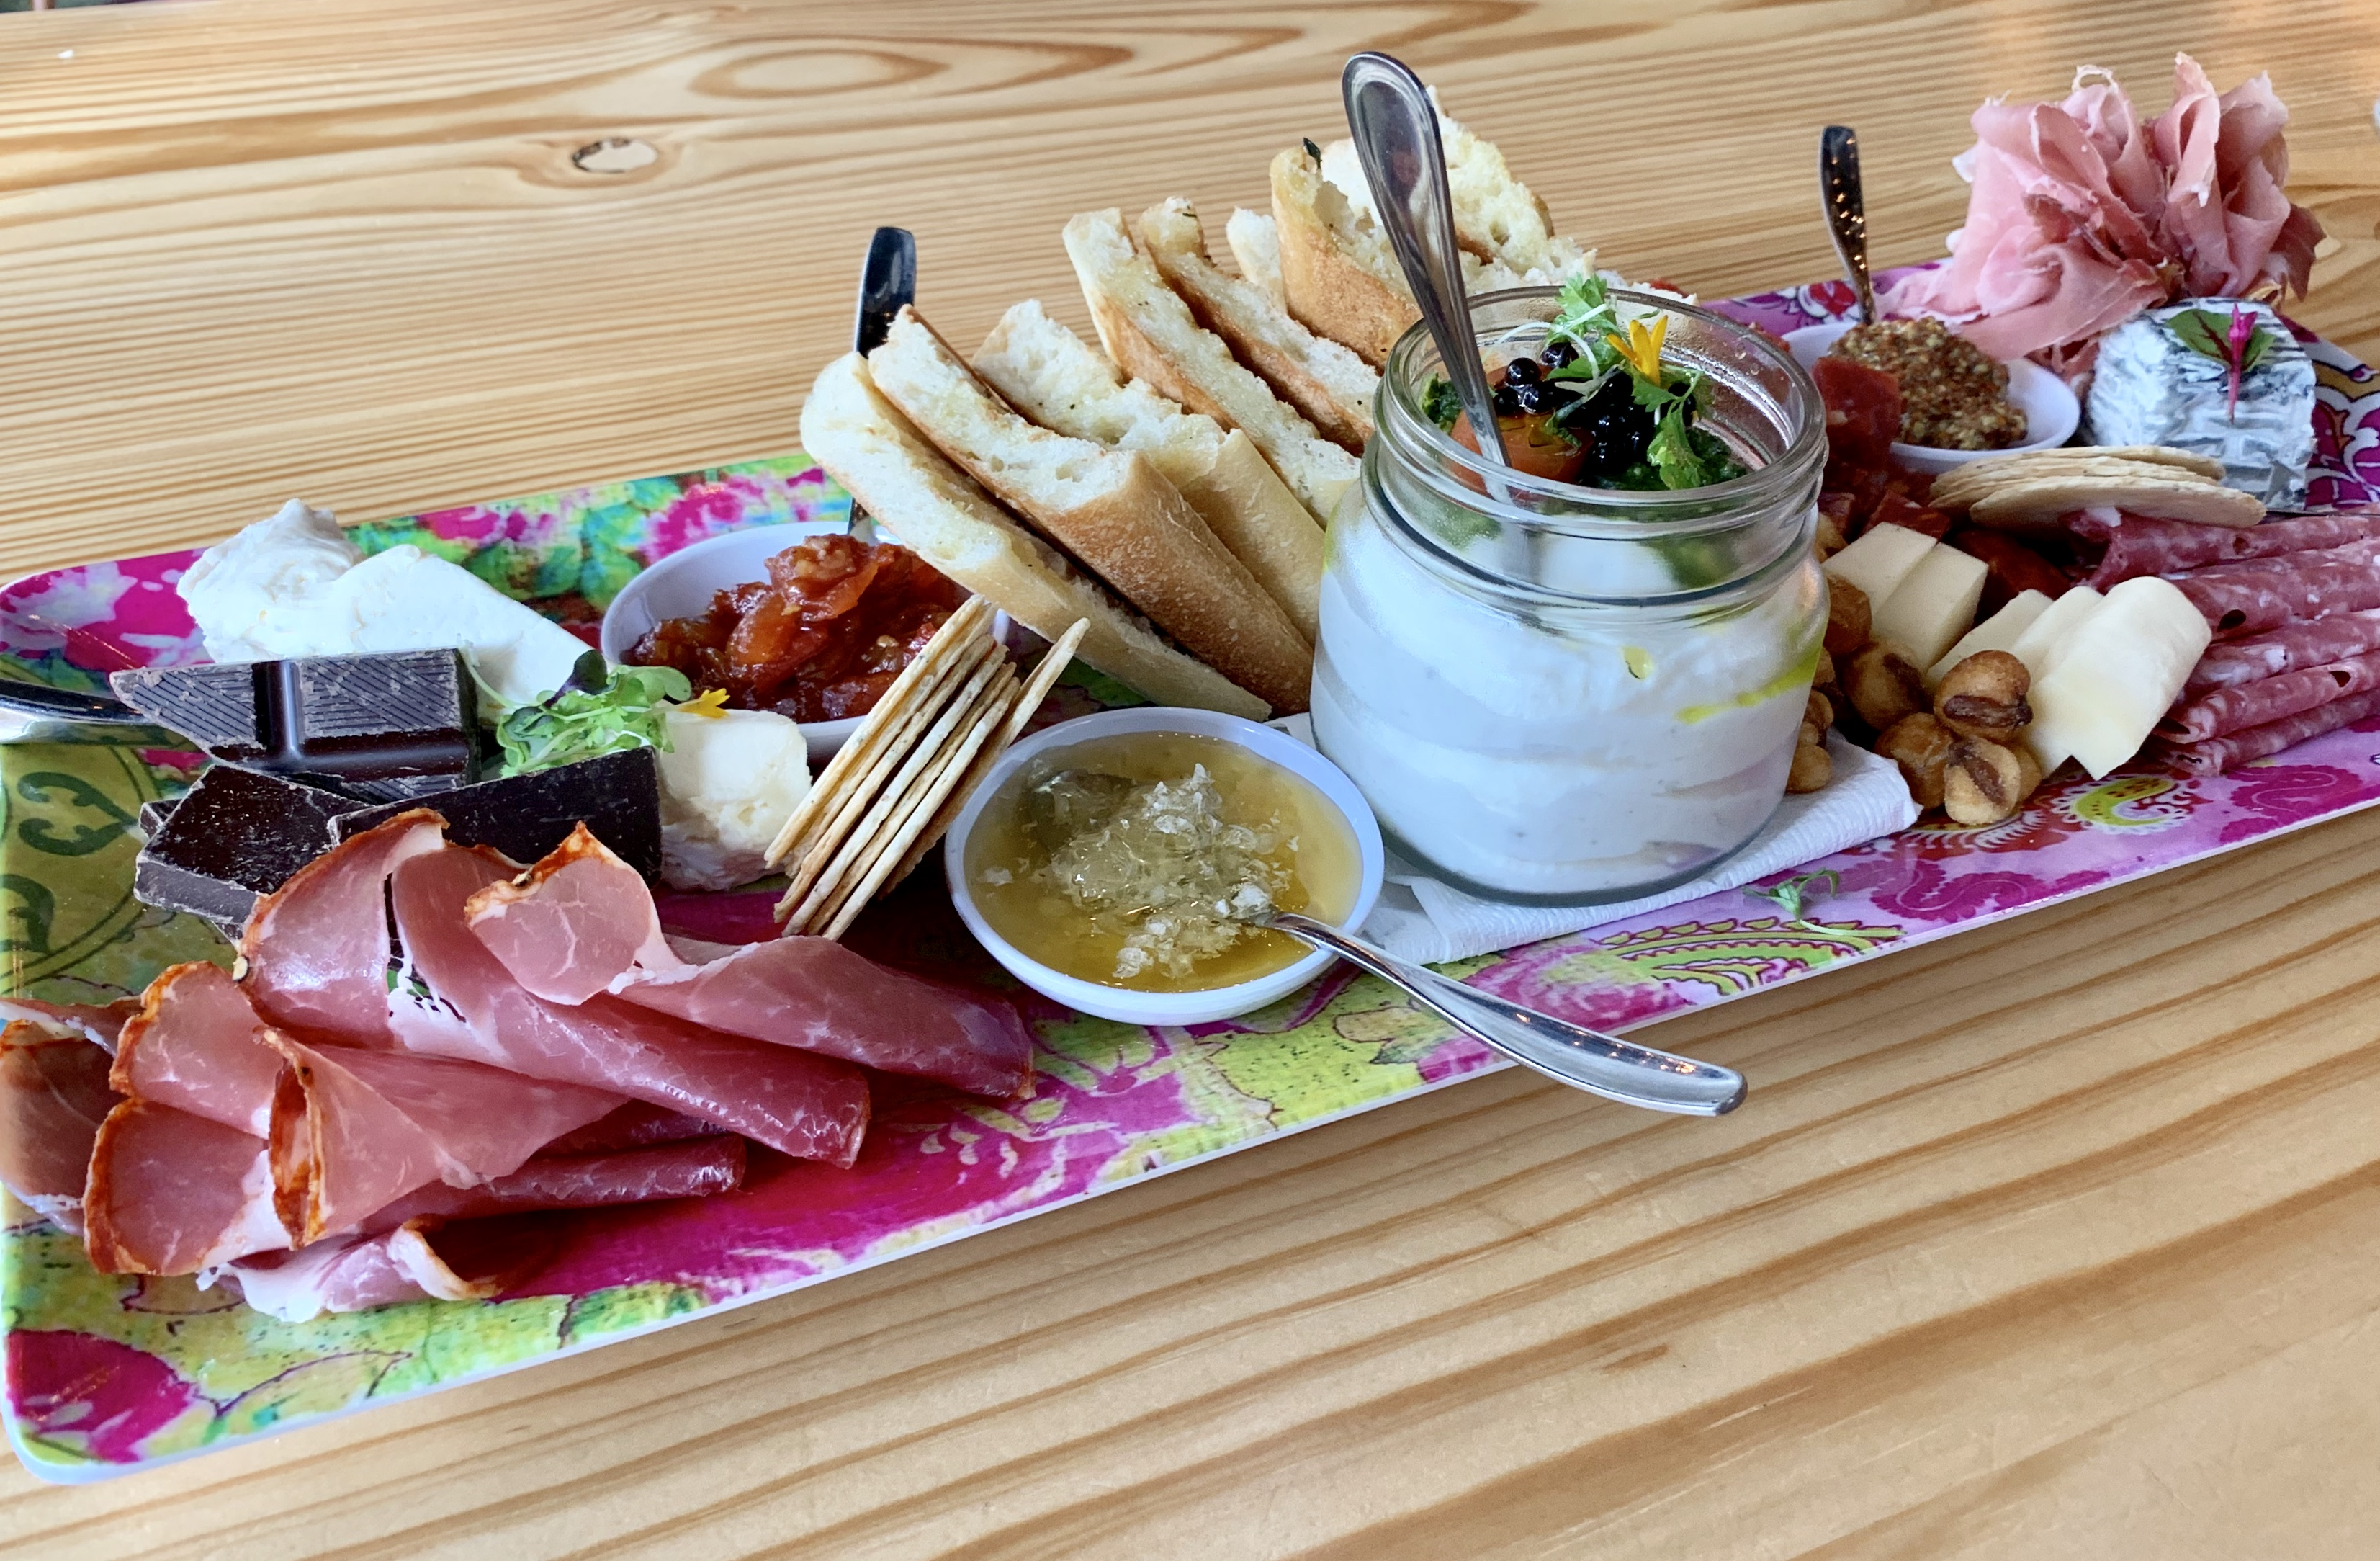 Custom Charcuterie Board from Lolita's